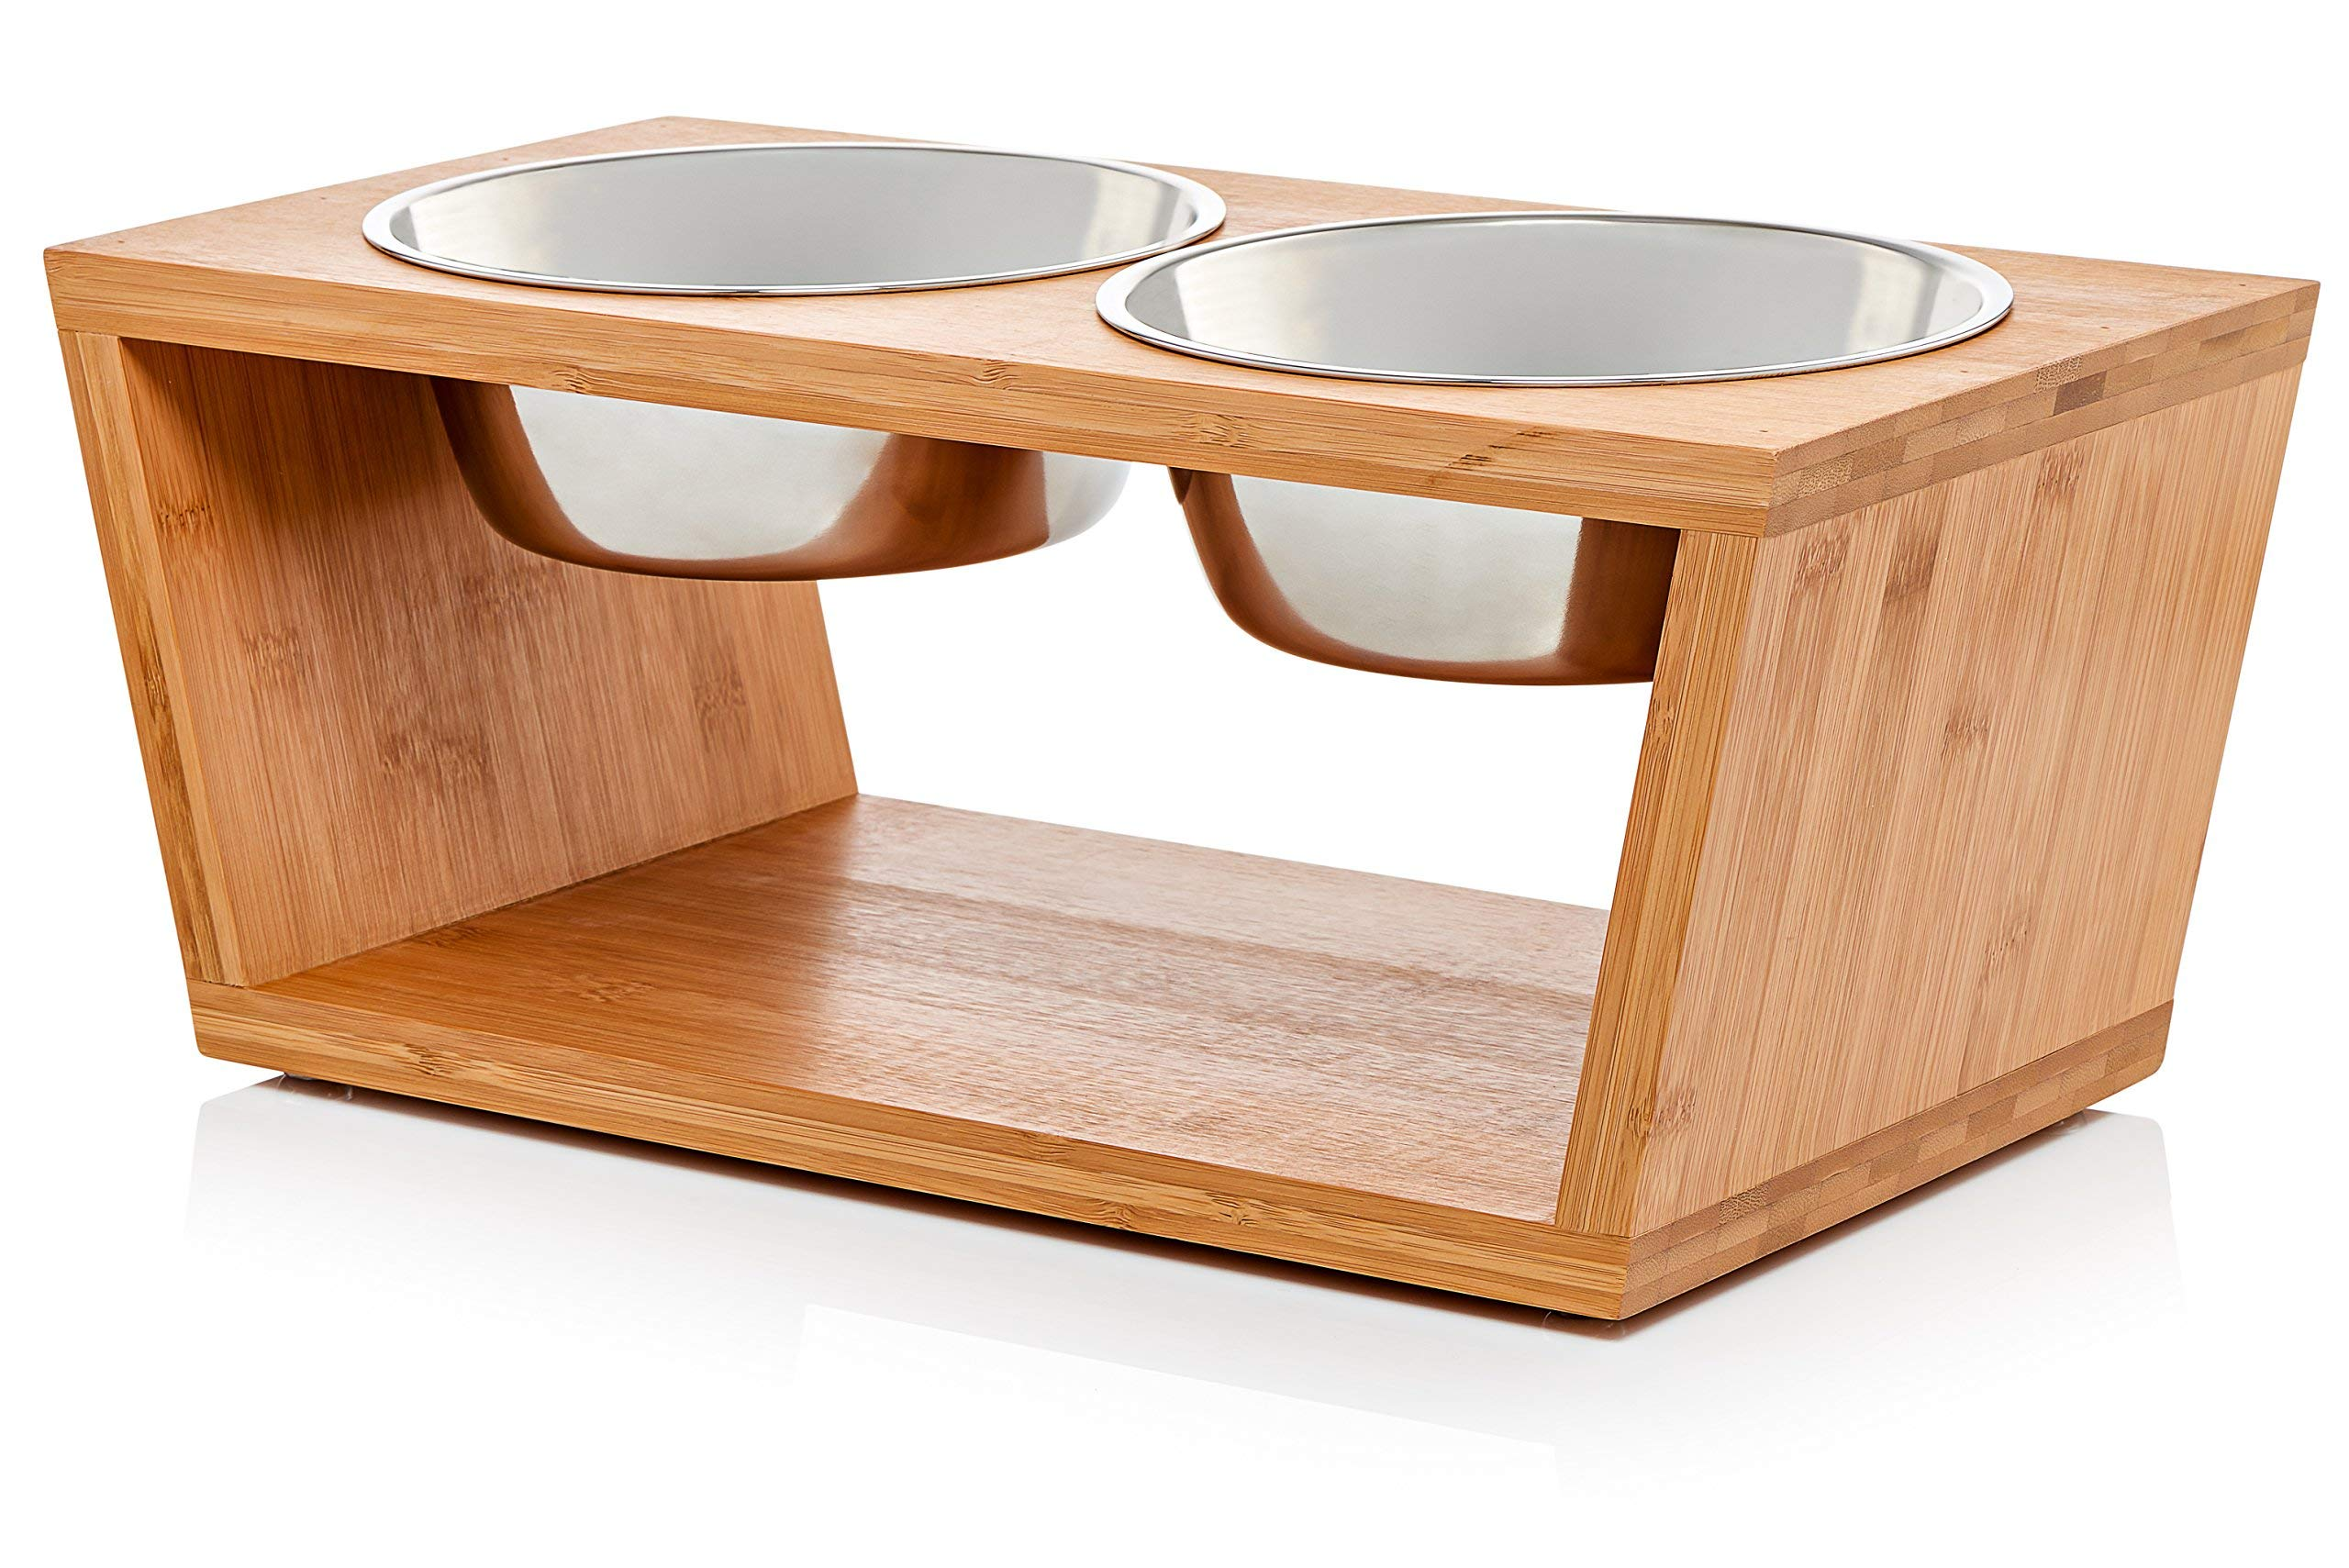 Premium 7'' Elevated Dog and Cat Pet Feeder, Double Bowl Raised Stand Comes with Extra Two Stainless Steel Bowls. Perfect for Dogs and Cats.